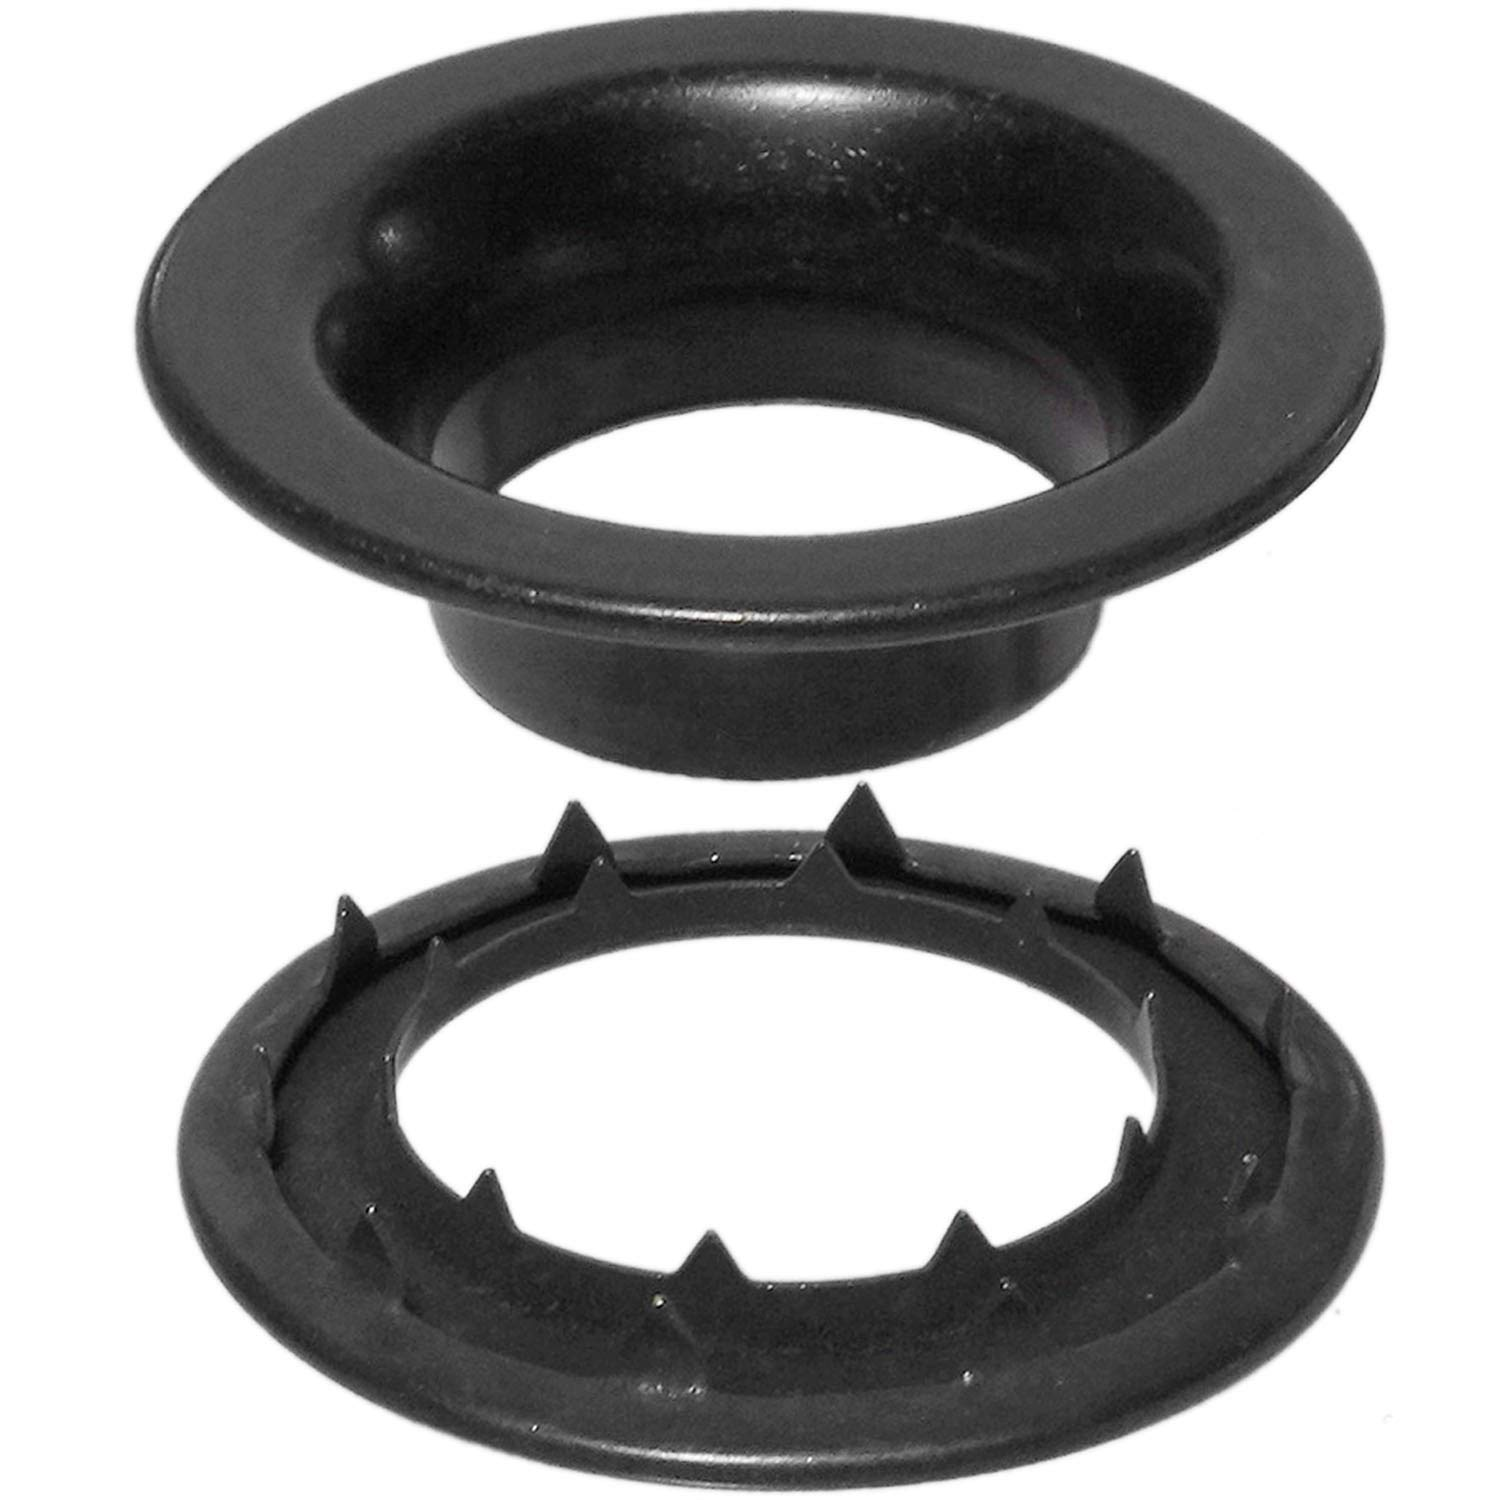 Stimpson Rolled Rim Grommet and Spur Washer Dull Black Chem Durable, Reliable, Heavy-Duty #8 Set (144 Pieces of Each)